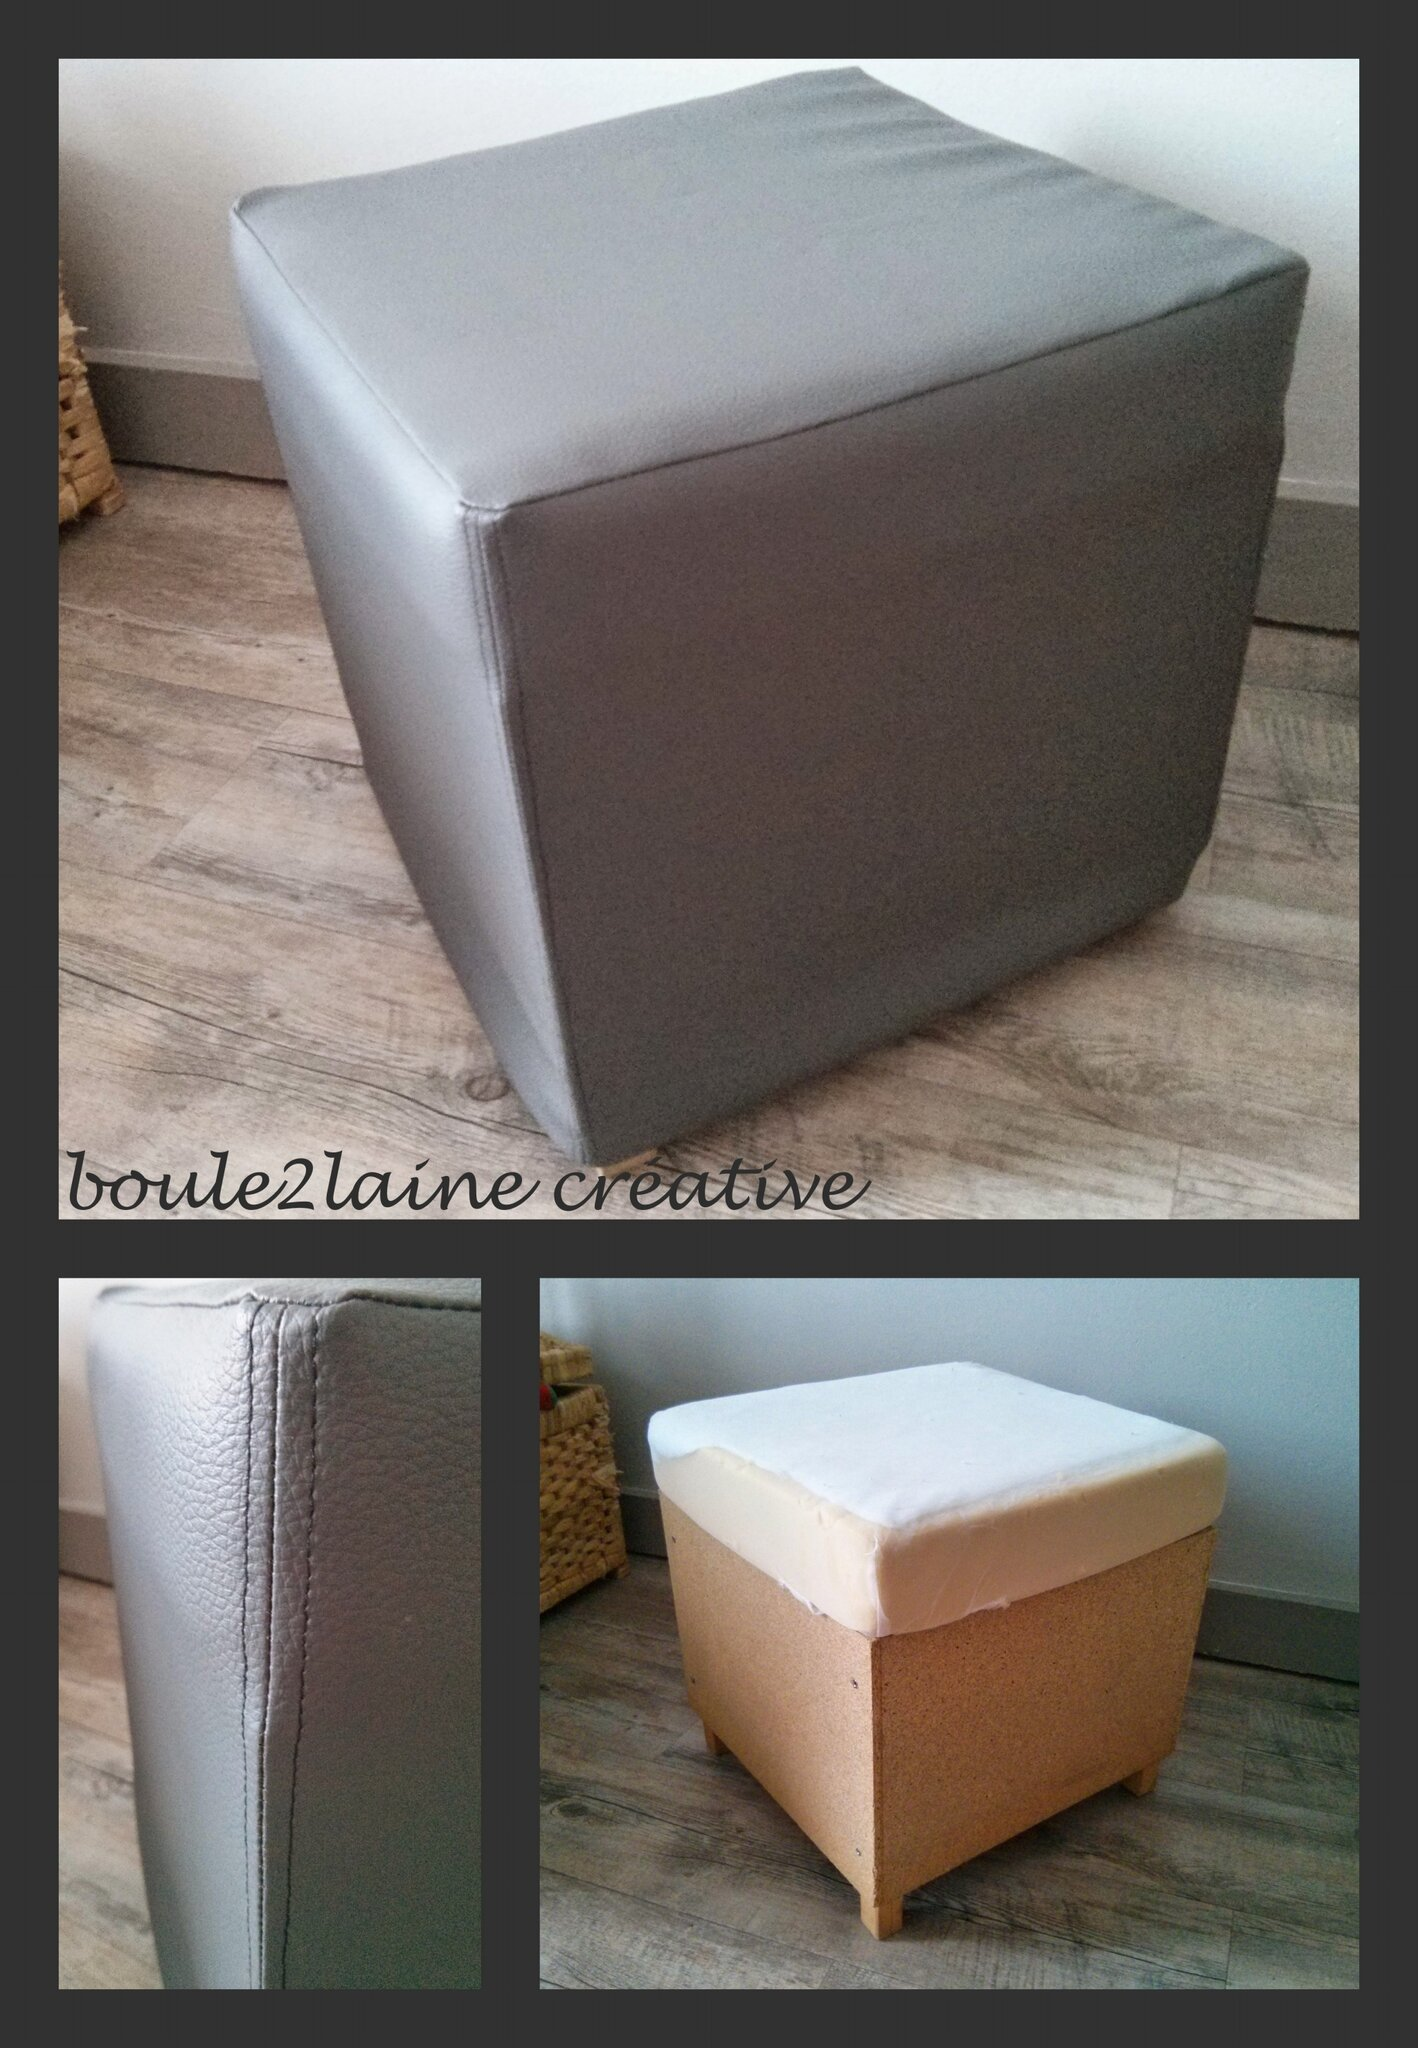 pouf relook trouv la poubelle boule2laine cr ative. Black Bedroom Furniture Sets. Home Design Ideas